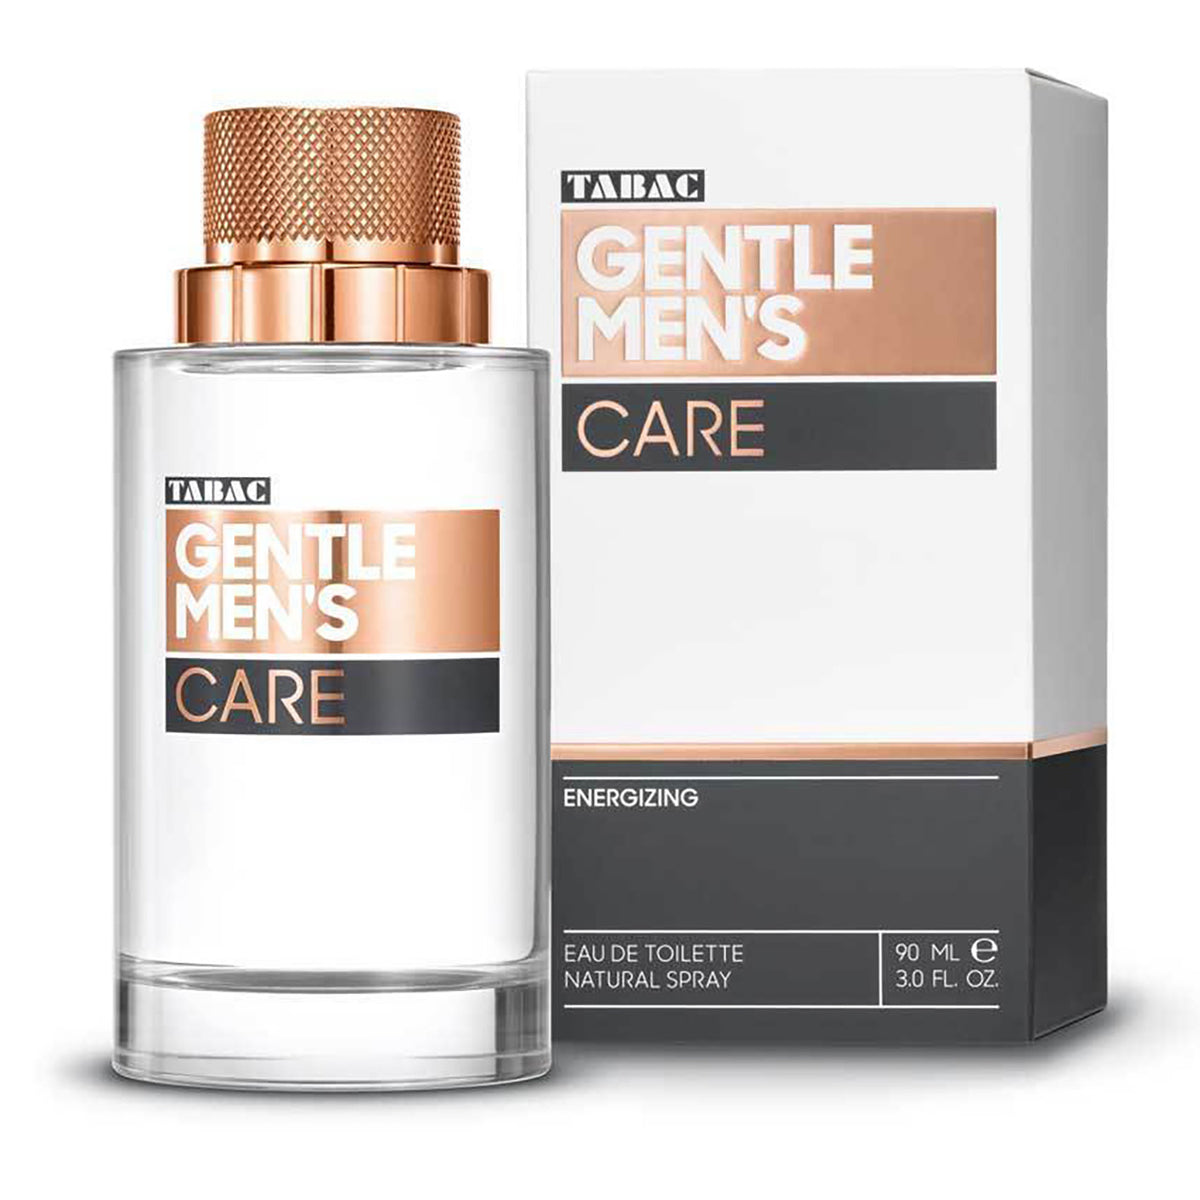 Tabac Gentlemens Care EDT 90ml